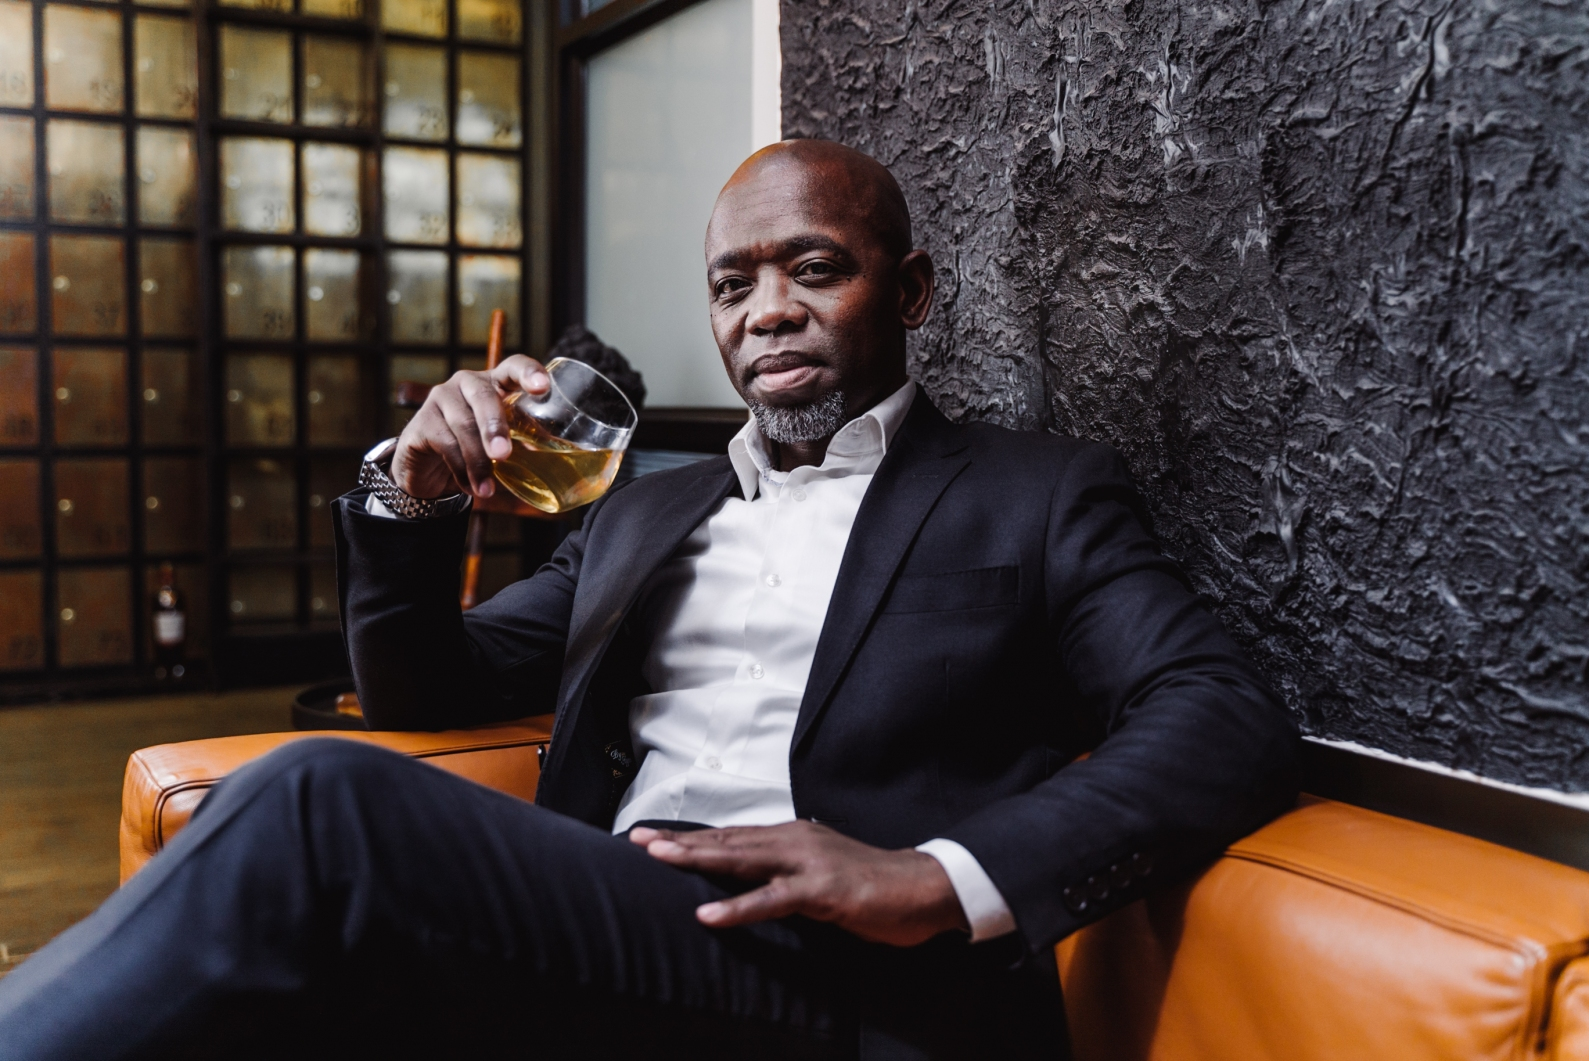 gallery/thami banda holding a glass of the macallan whisky